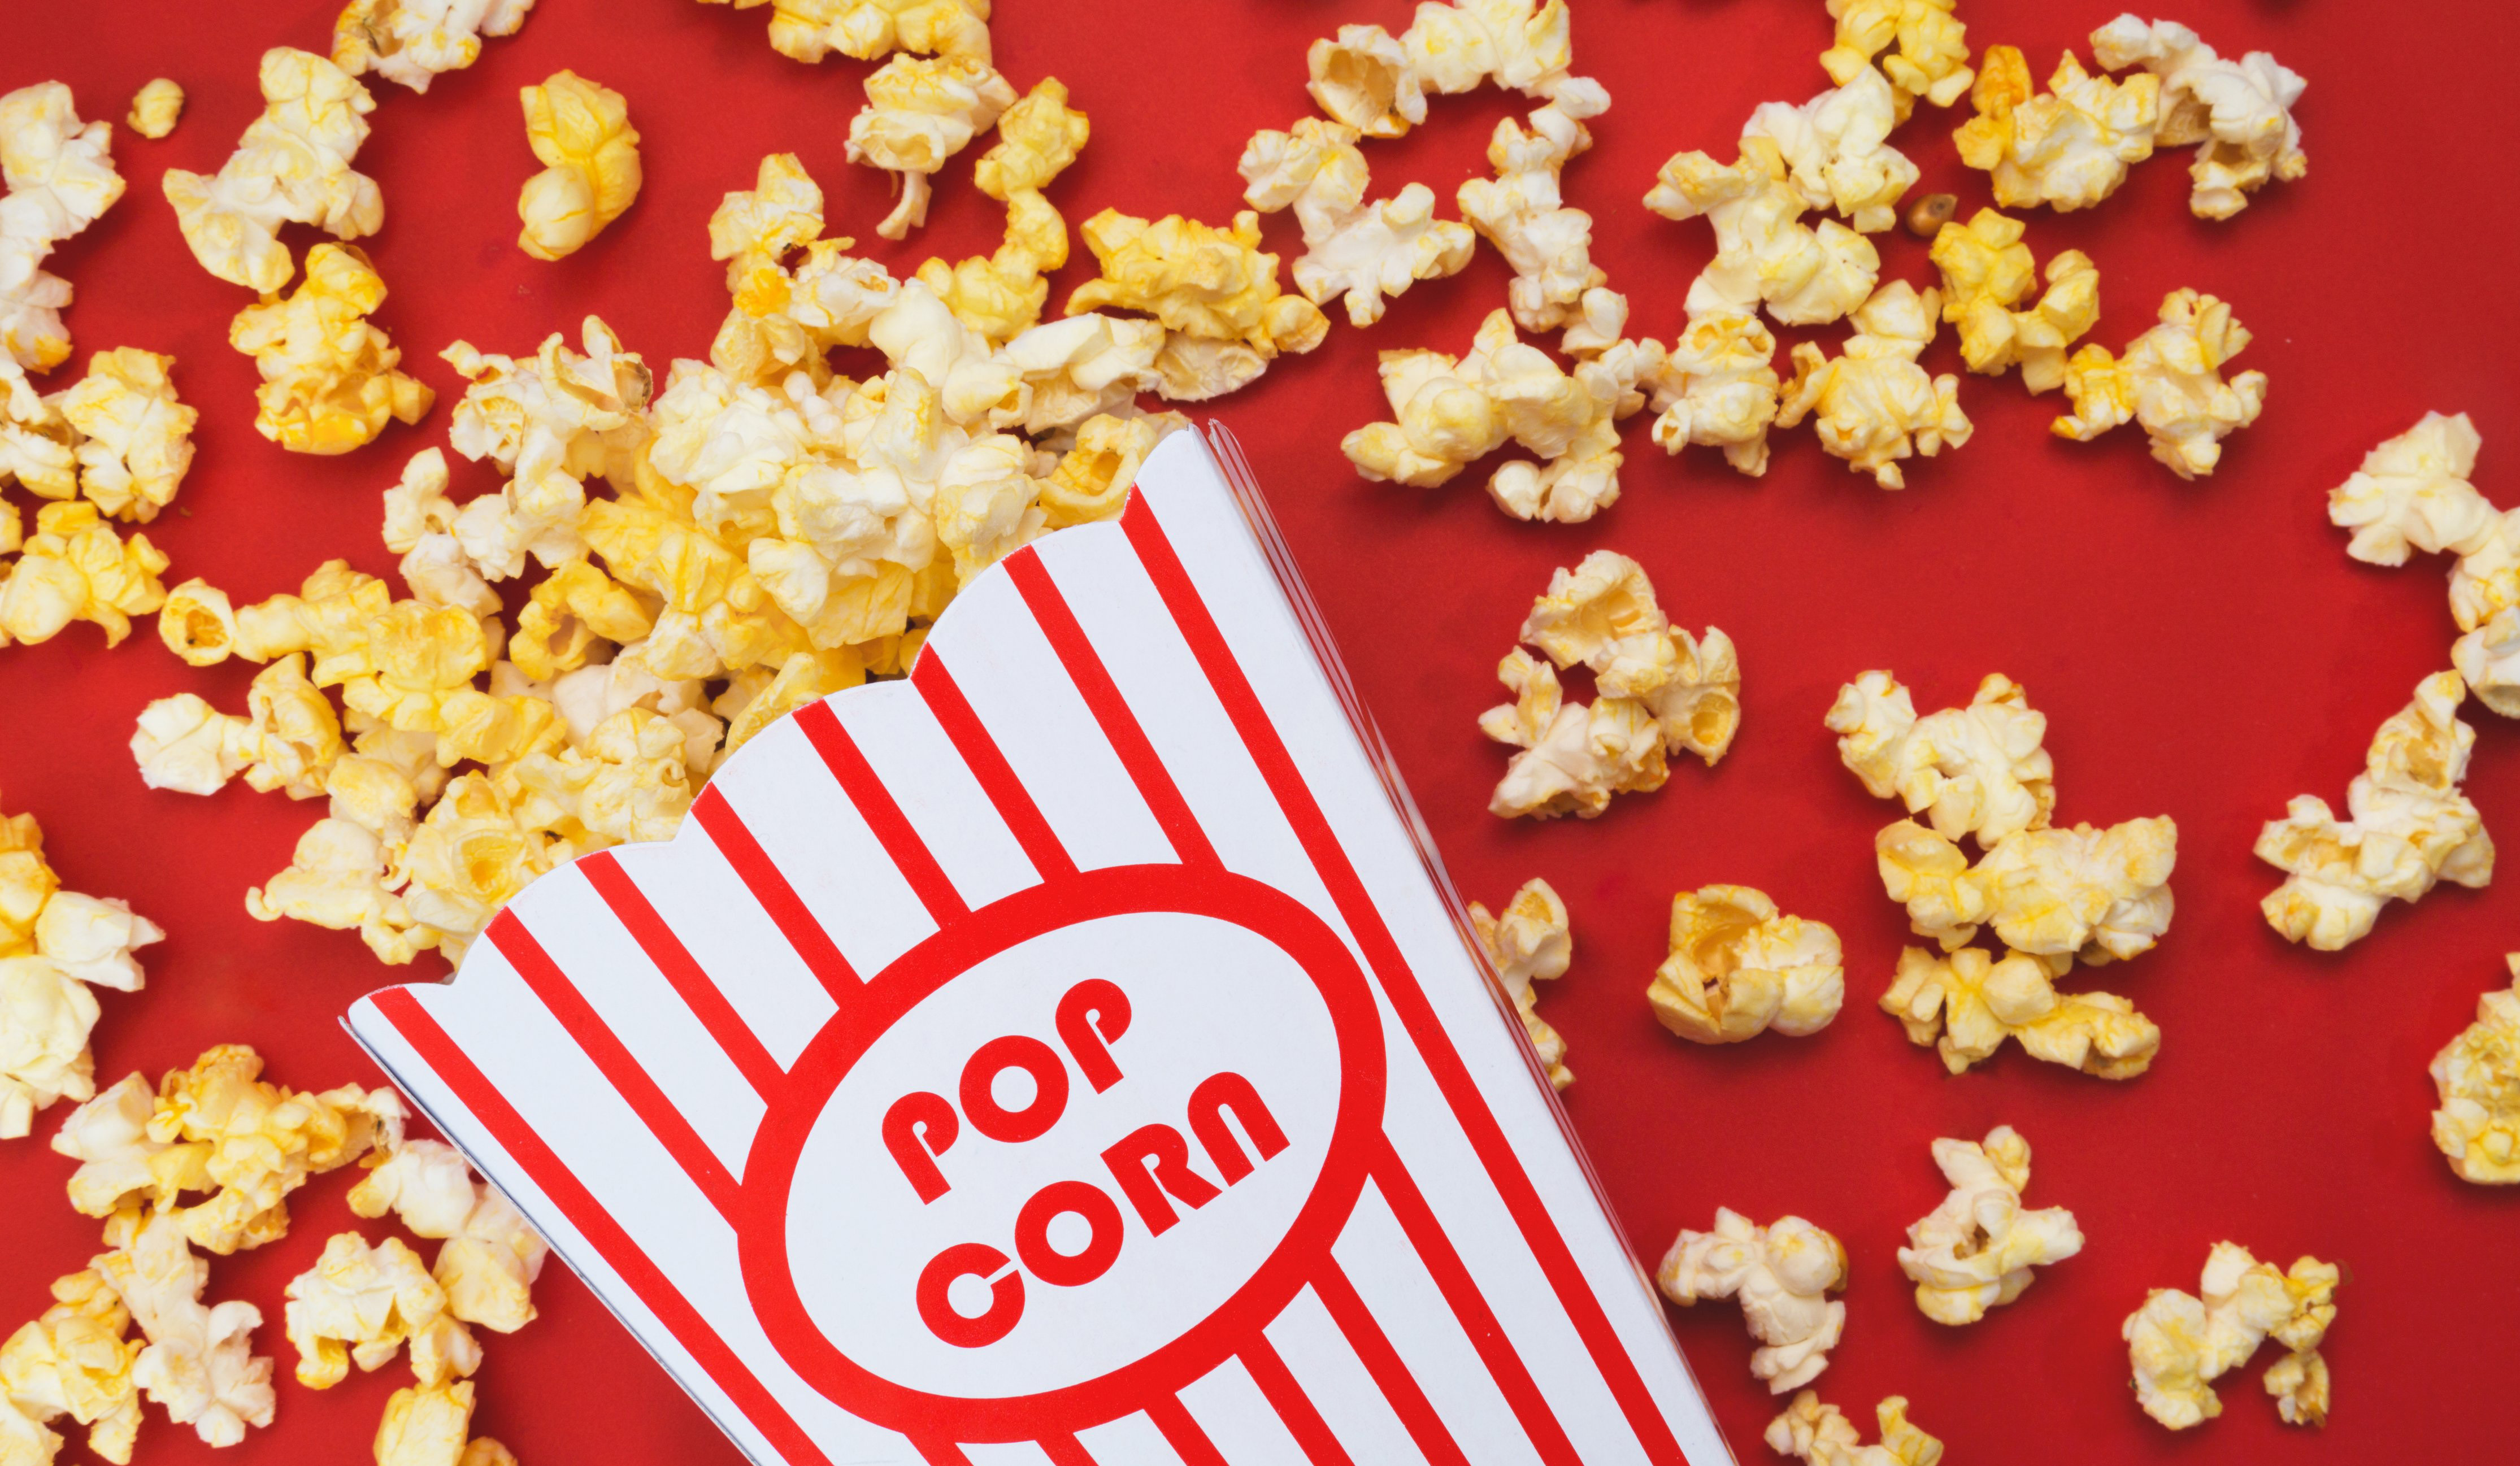 cropped_spilled-popcorn-on-a-red-background